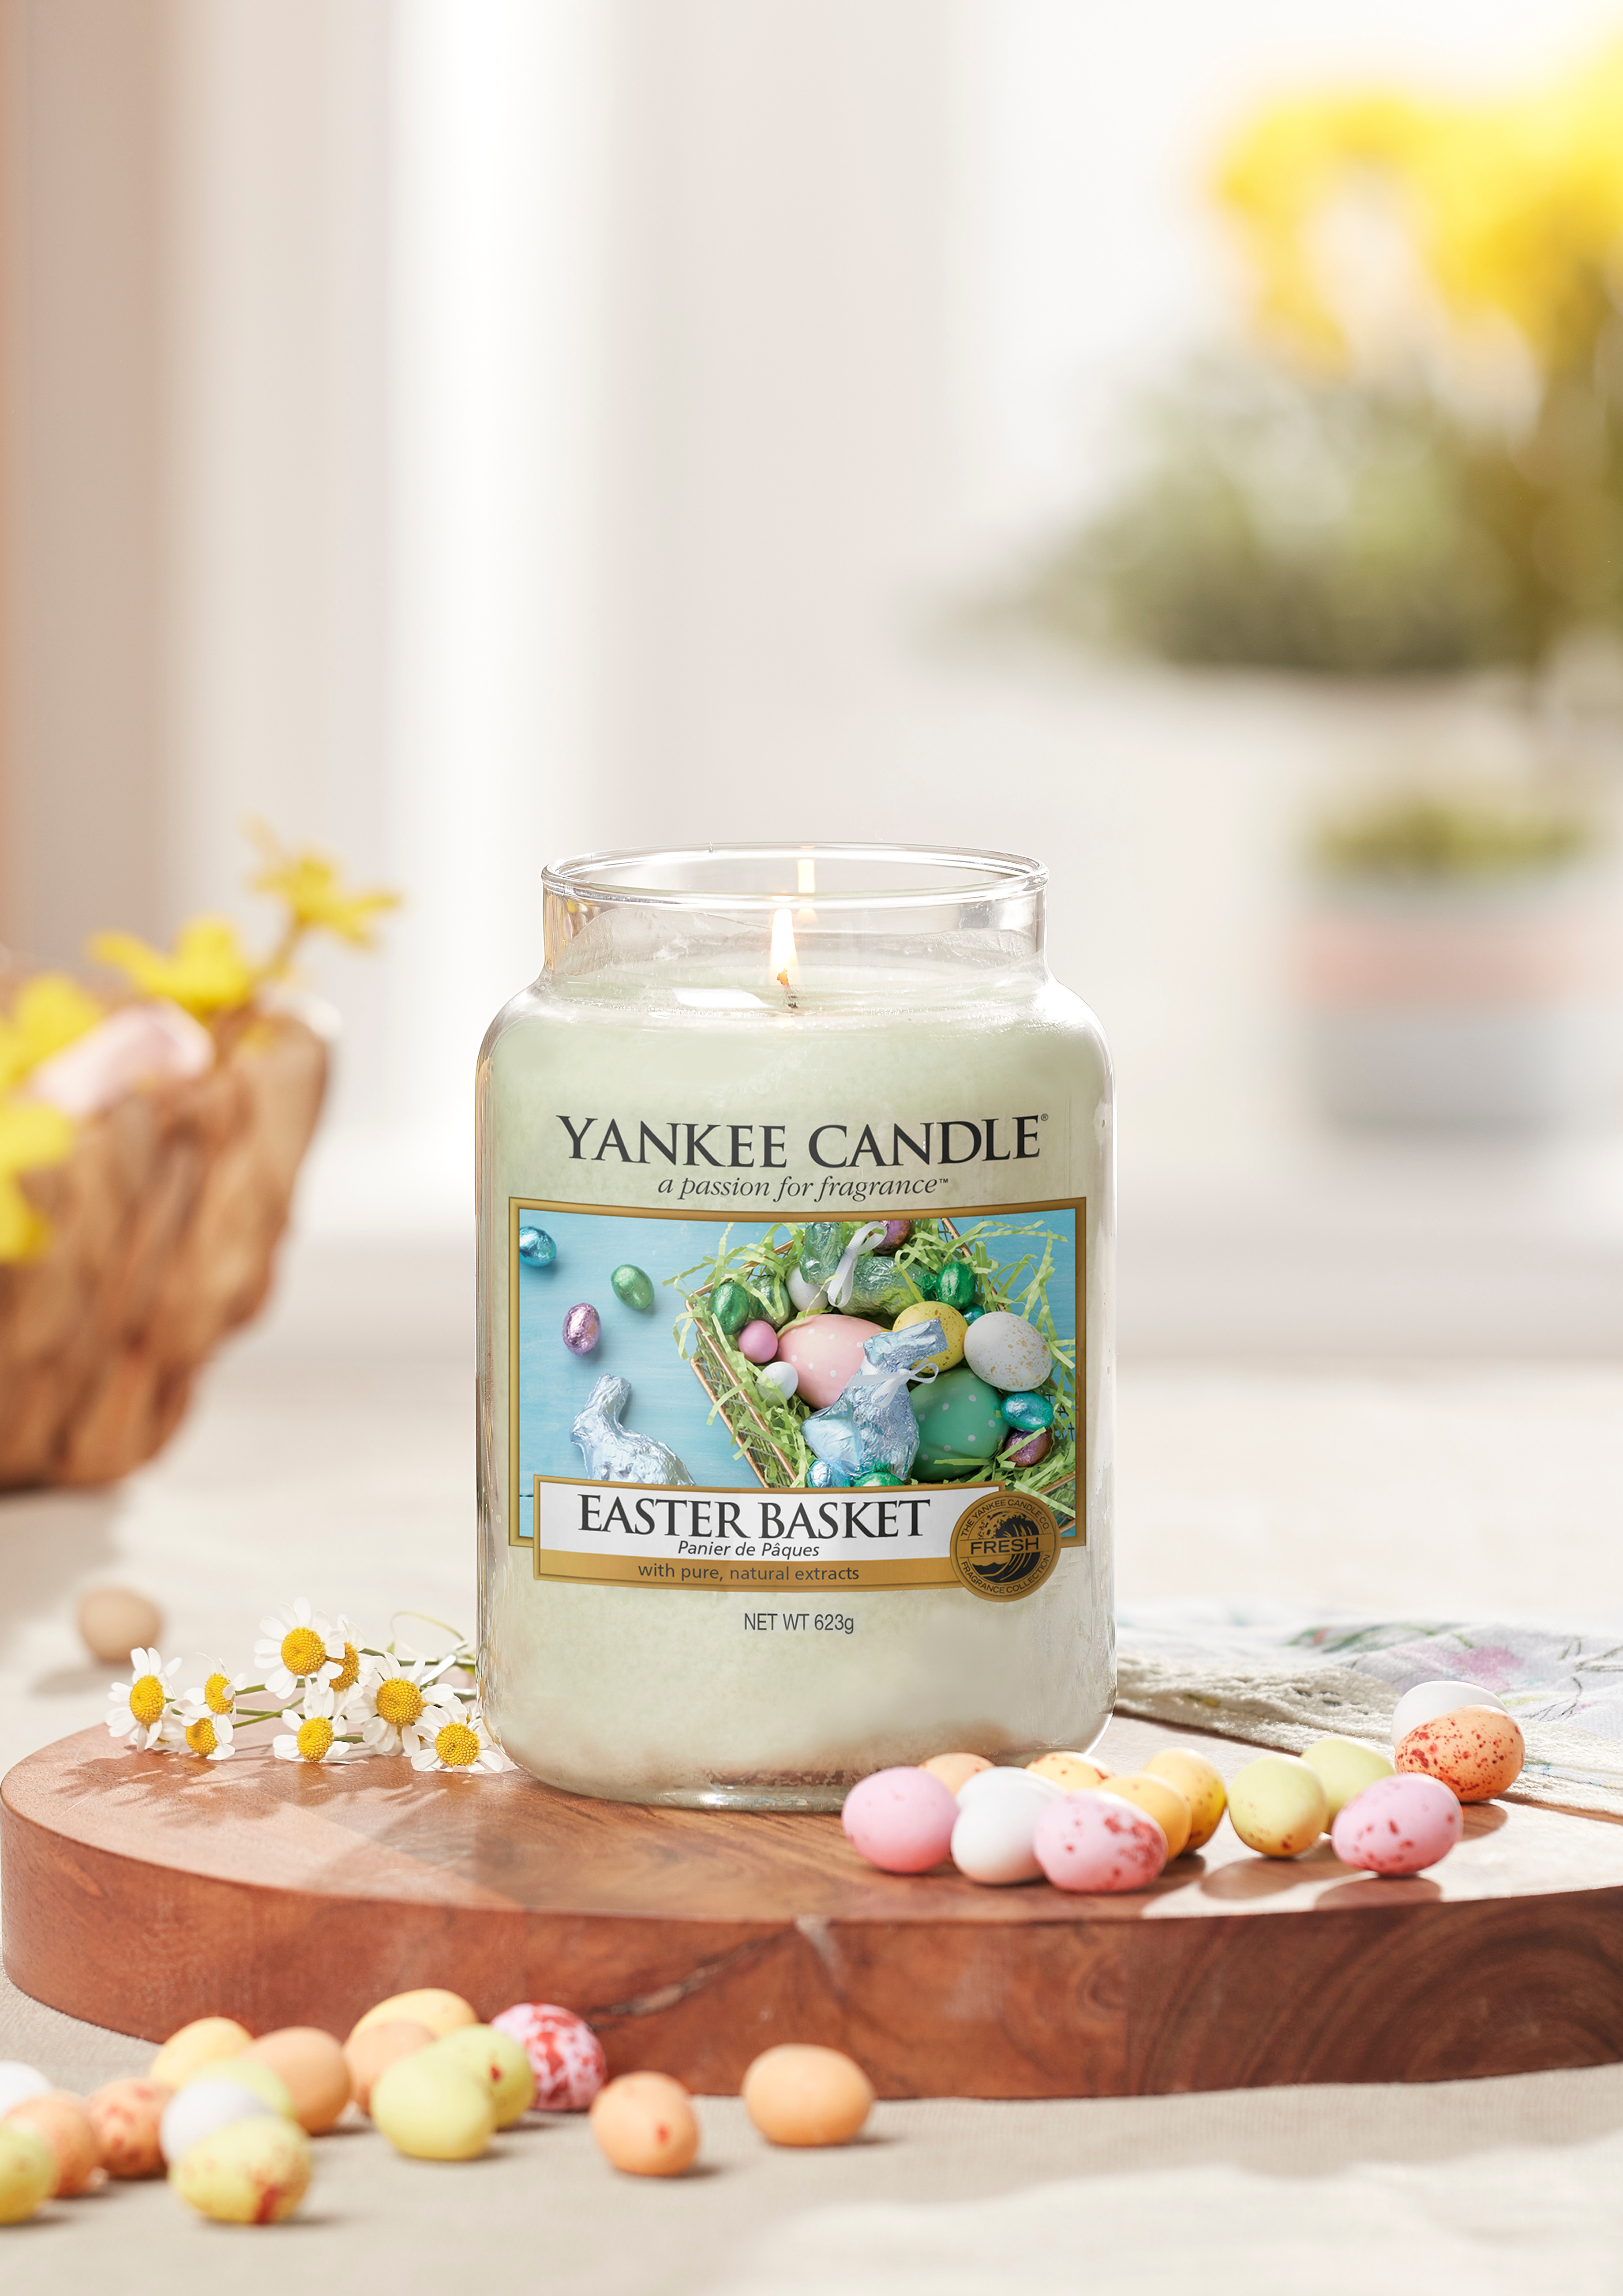 Credit: Yankee Candle